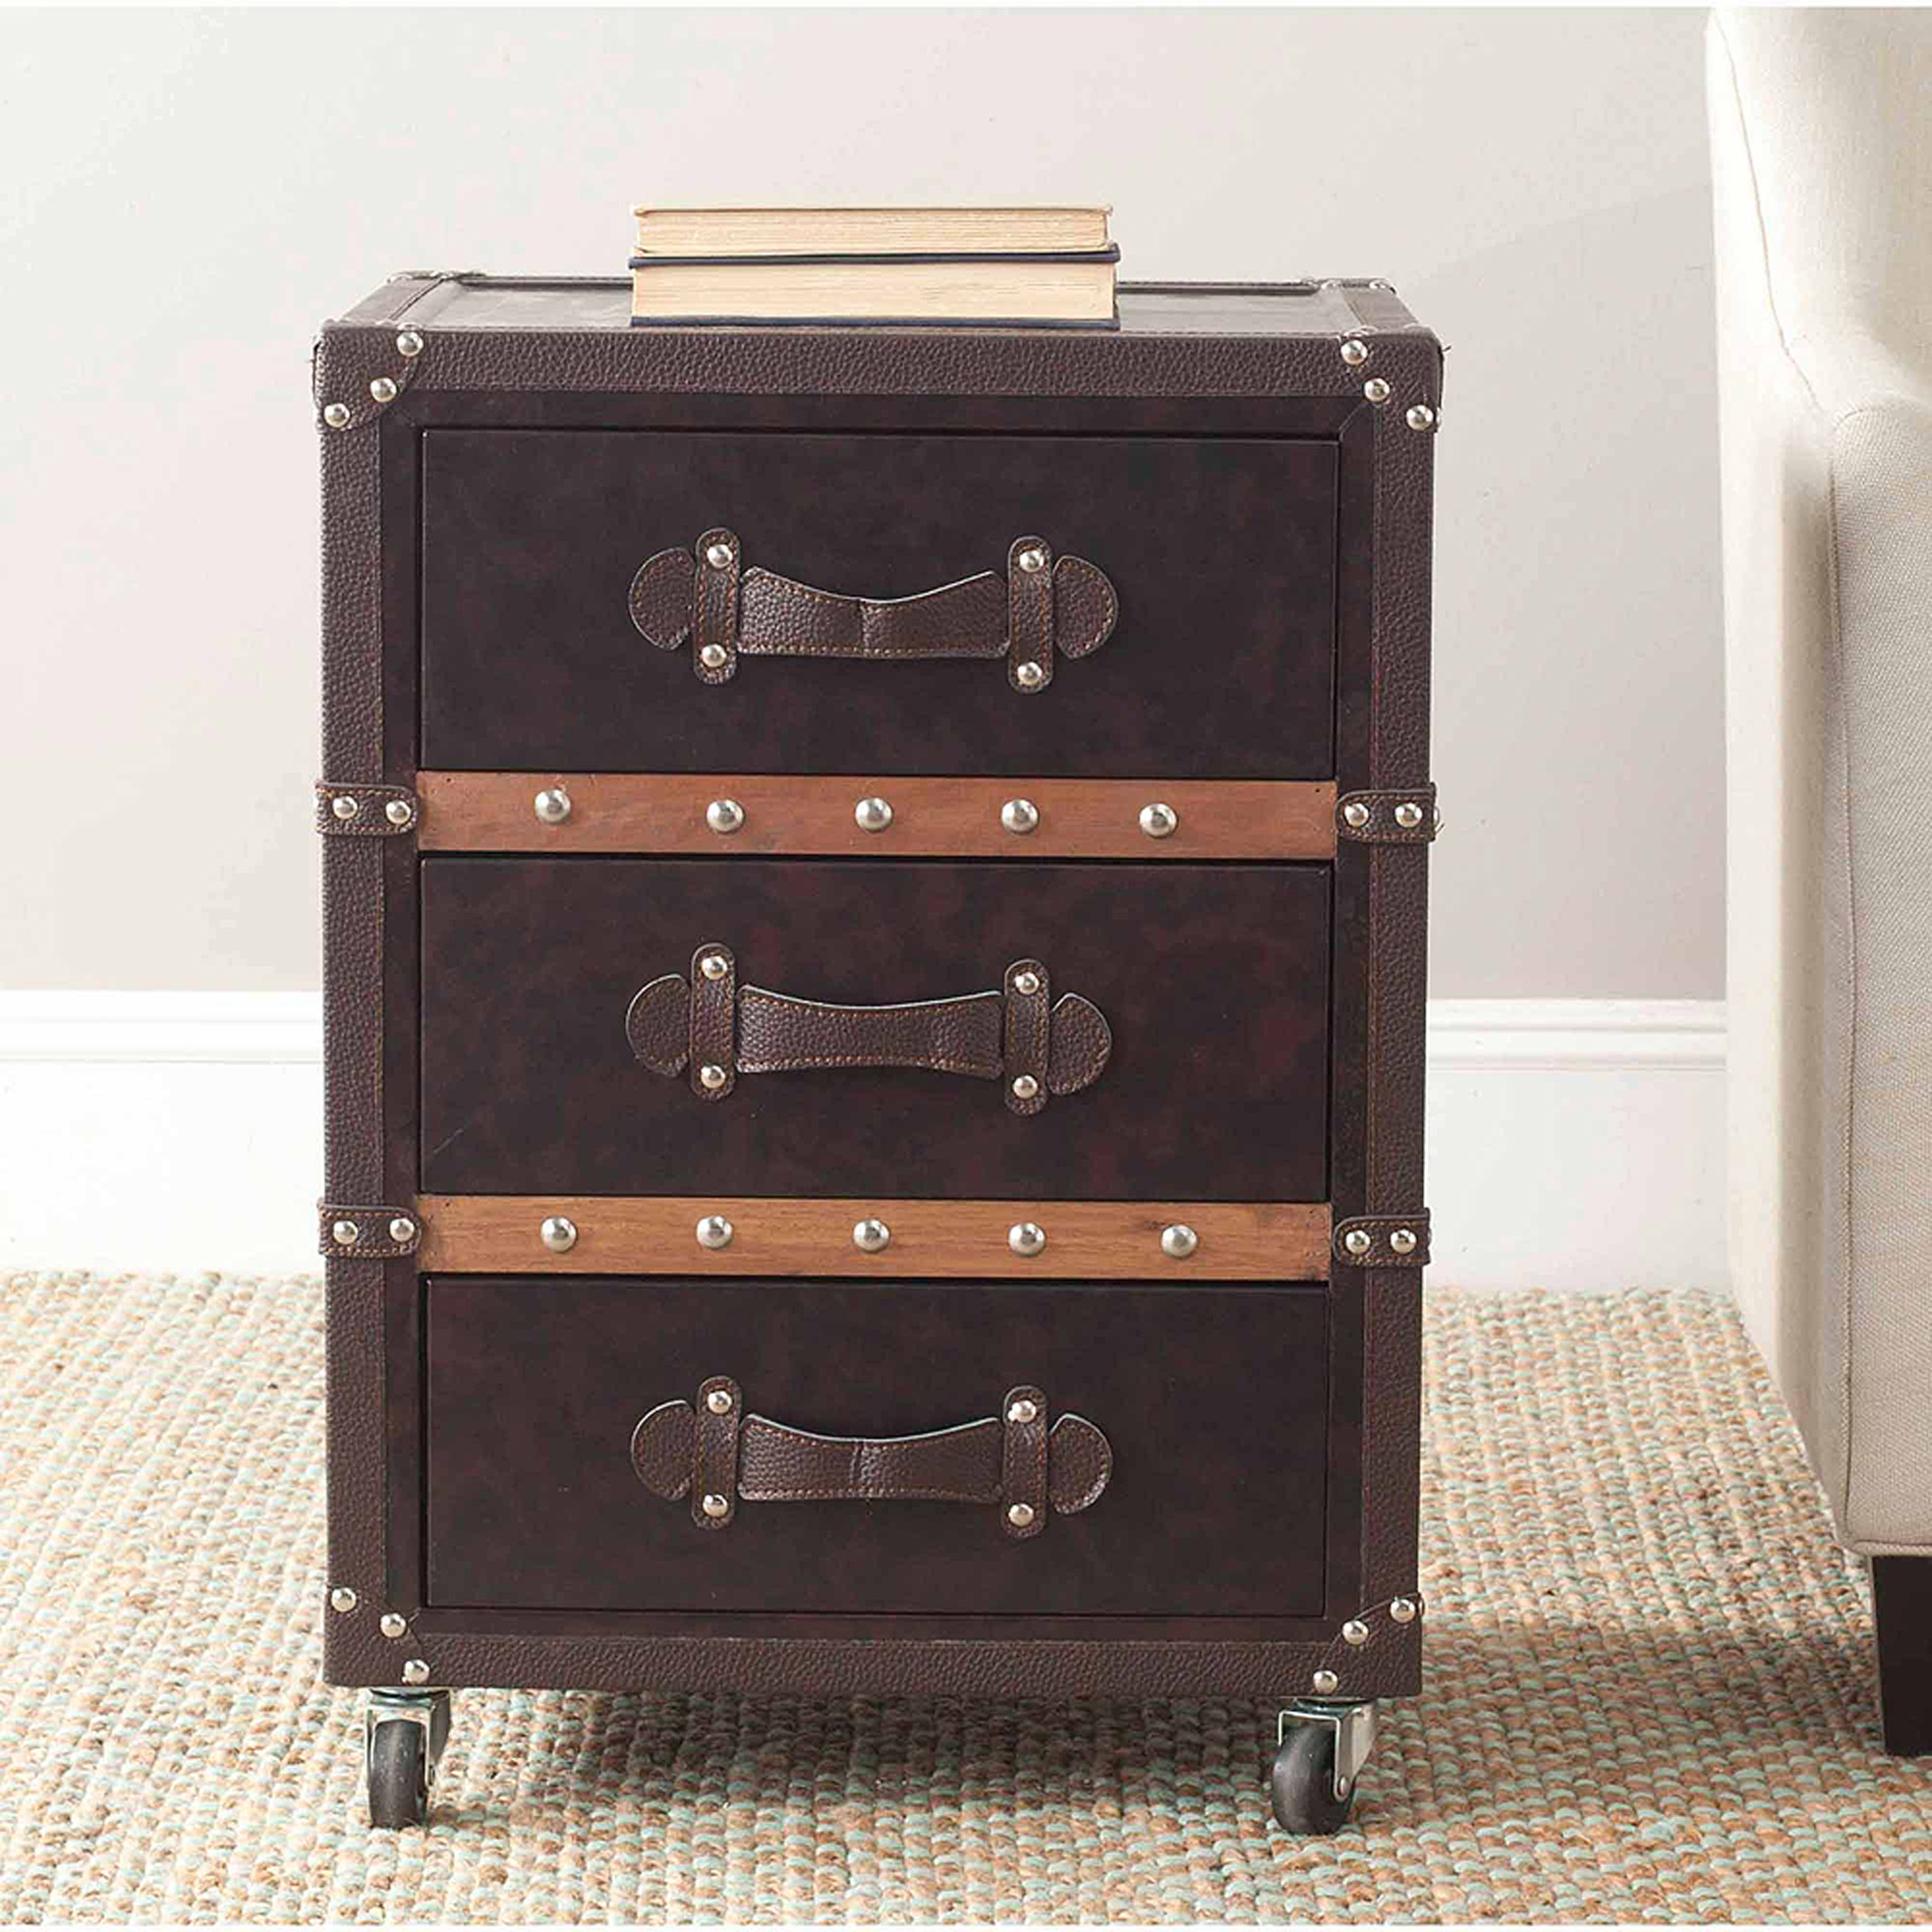 Safavieh Norman 3-Drawer Rolling Chest, Black/Brown